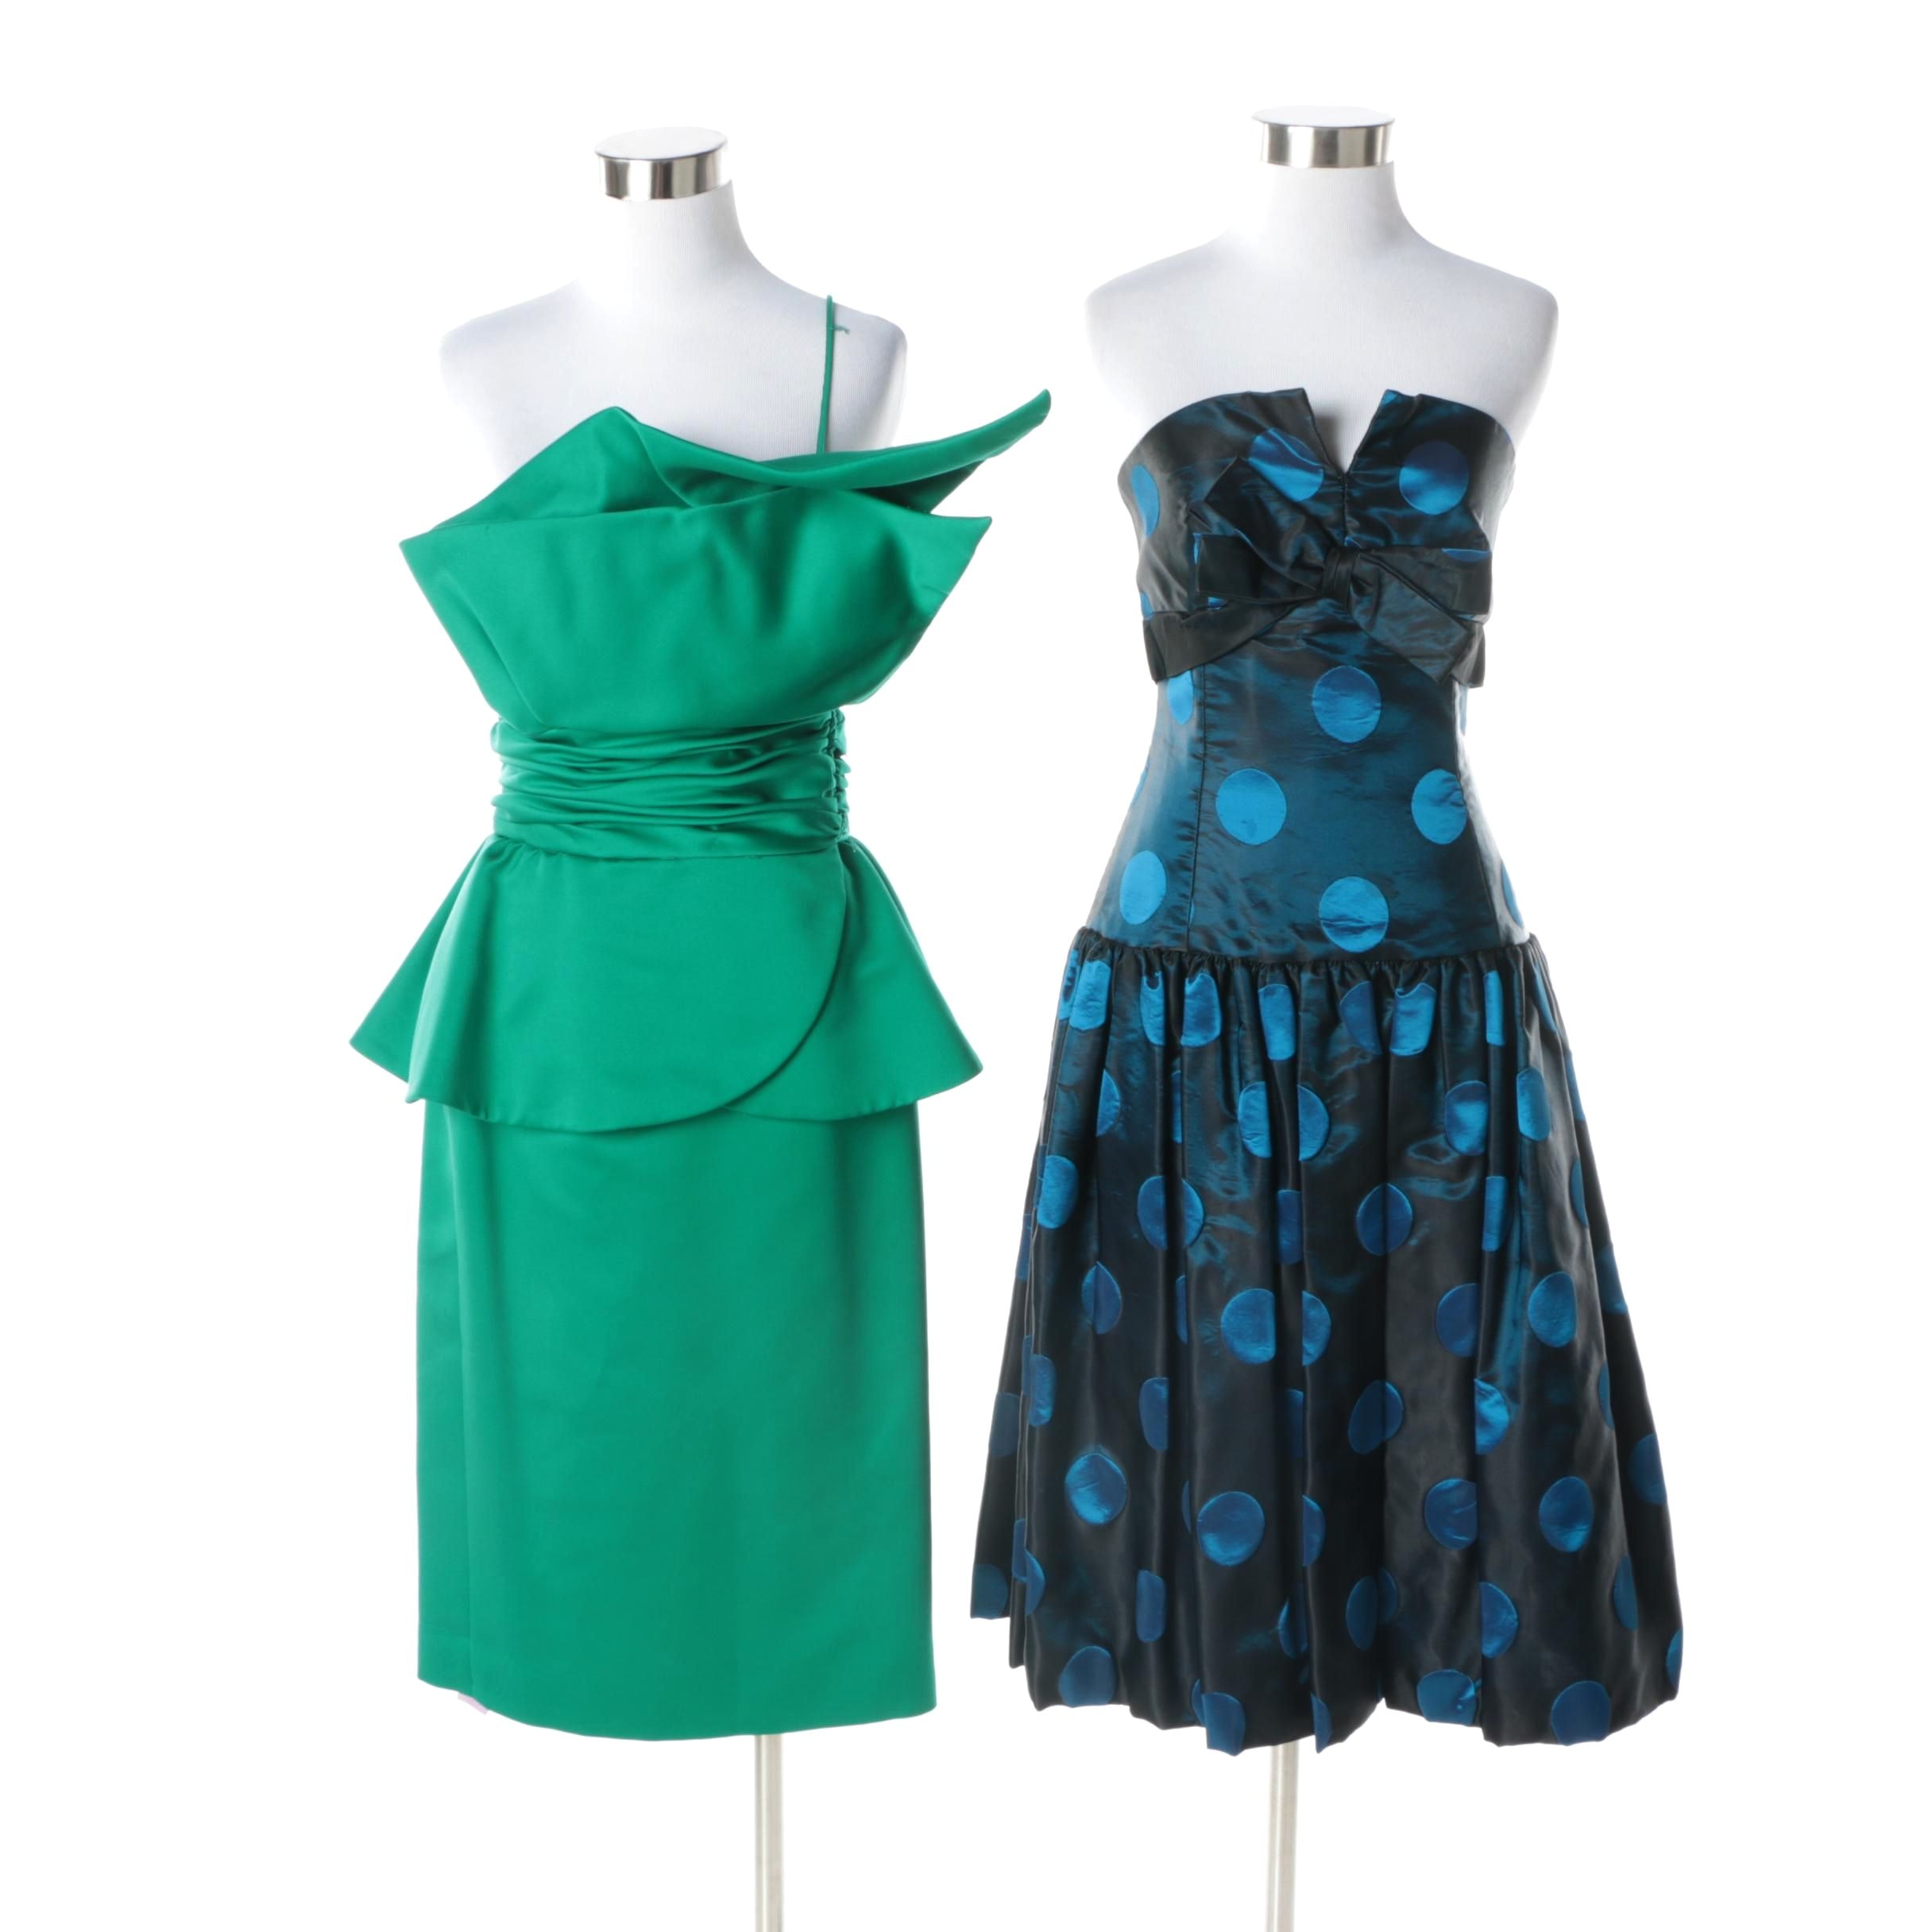 1980s Vintage Victor Costa Green Peplum and Strapless Blue Cocktail Dresses